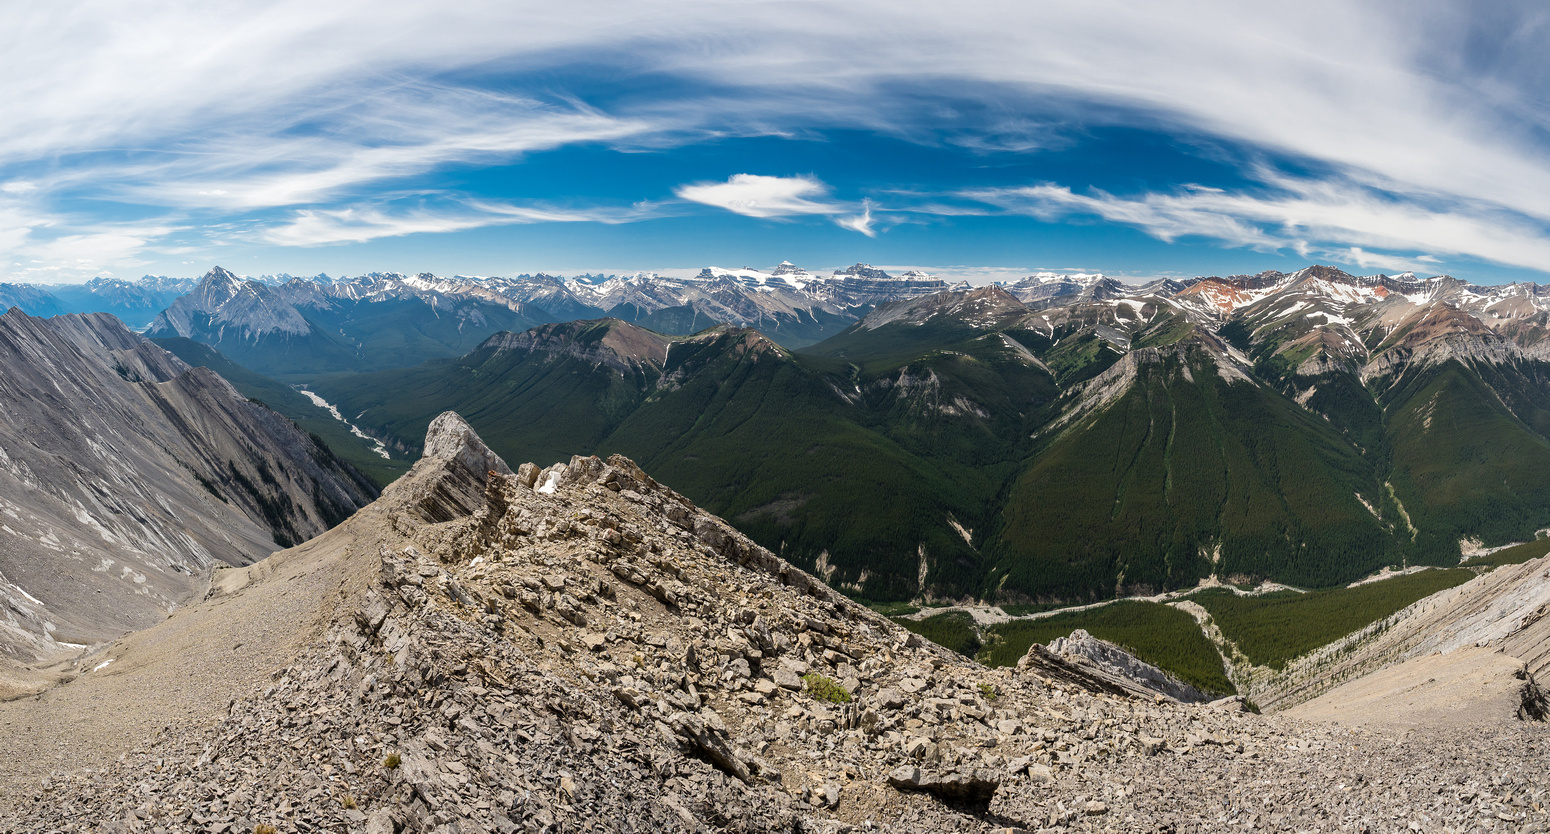 Spectacular views from the outcrop towards Elliott and Sentinel (L), Resolute and Cline (C) and Seven Seas (R).